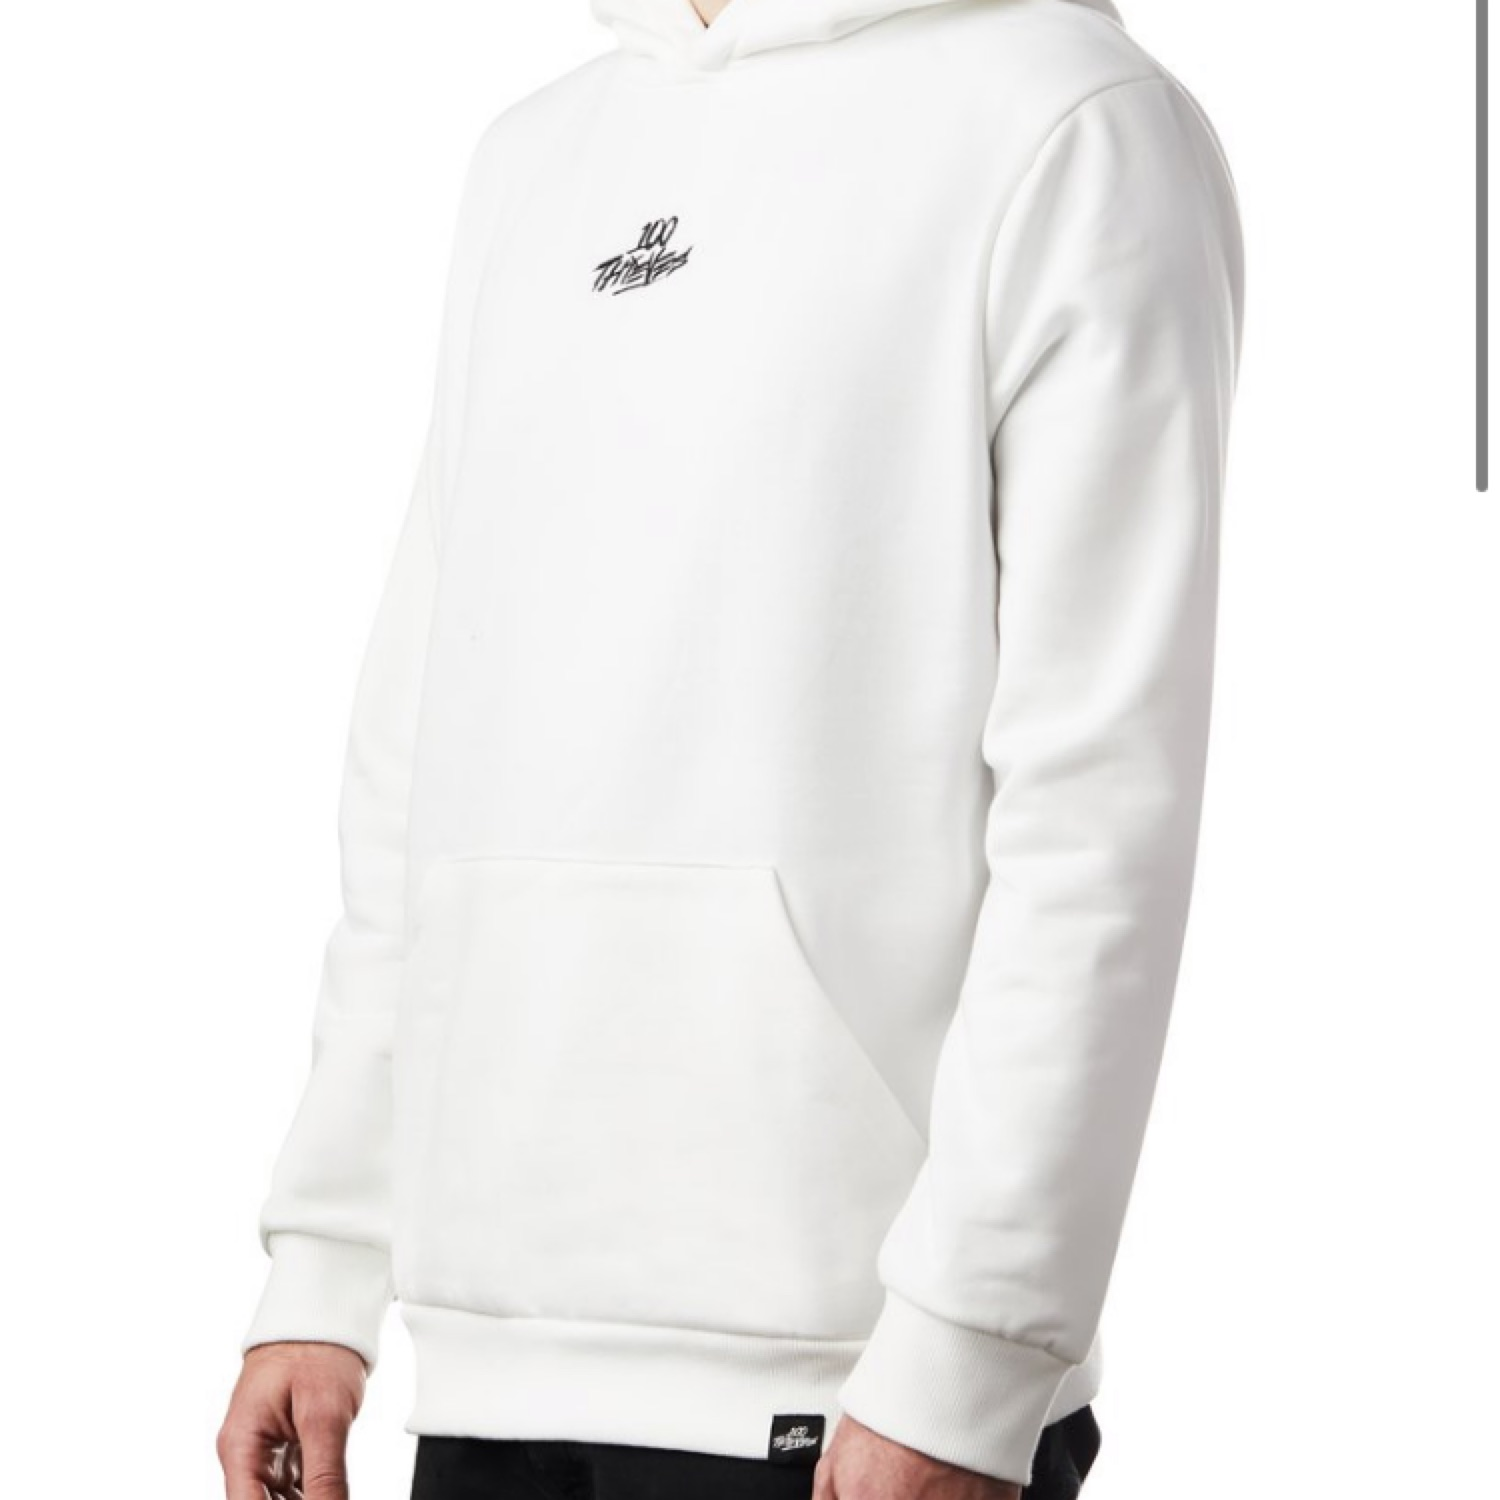 low price excellent quality picked up 100 Thieves 2019 Cream Hoodie M